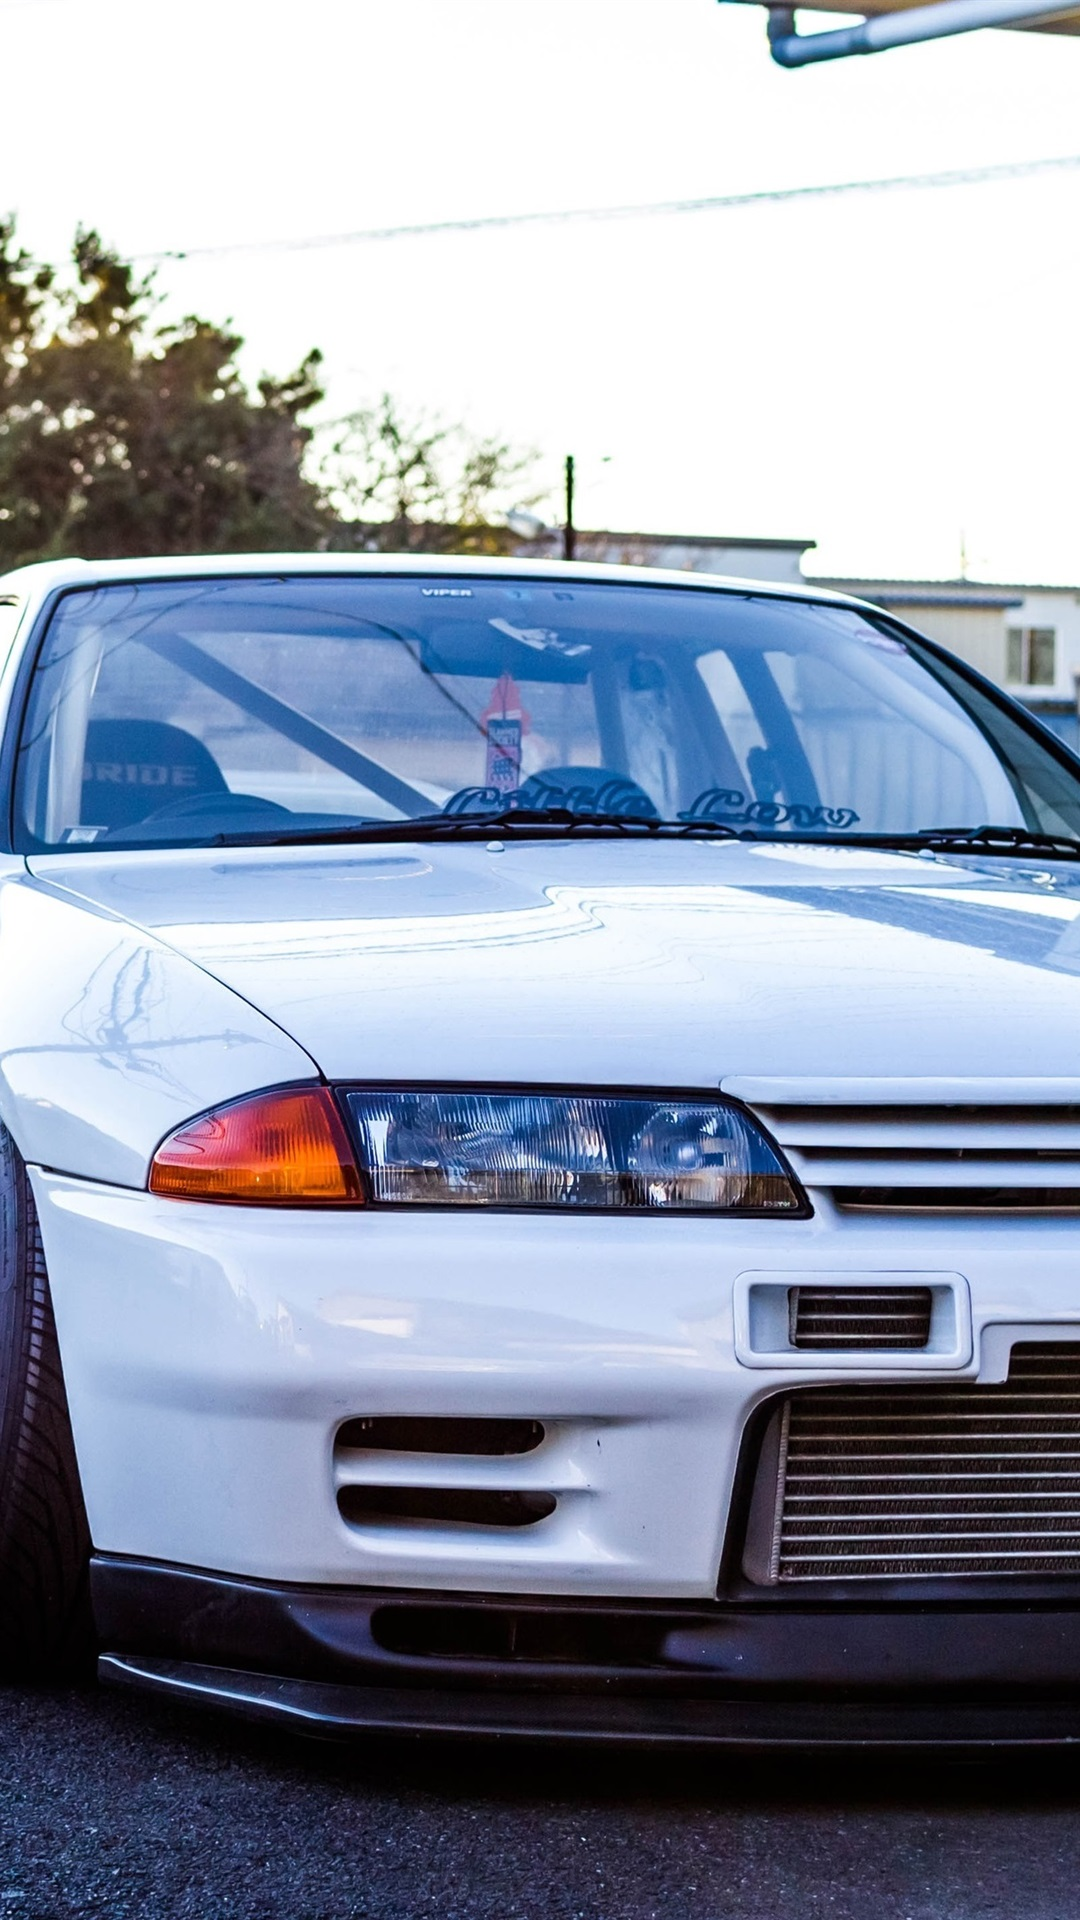 Nissan Gtr R32 Skyline White Classic Car 1080x1920 Iphone 8 7 6 6s Plus Wallpaper Background Picture Image